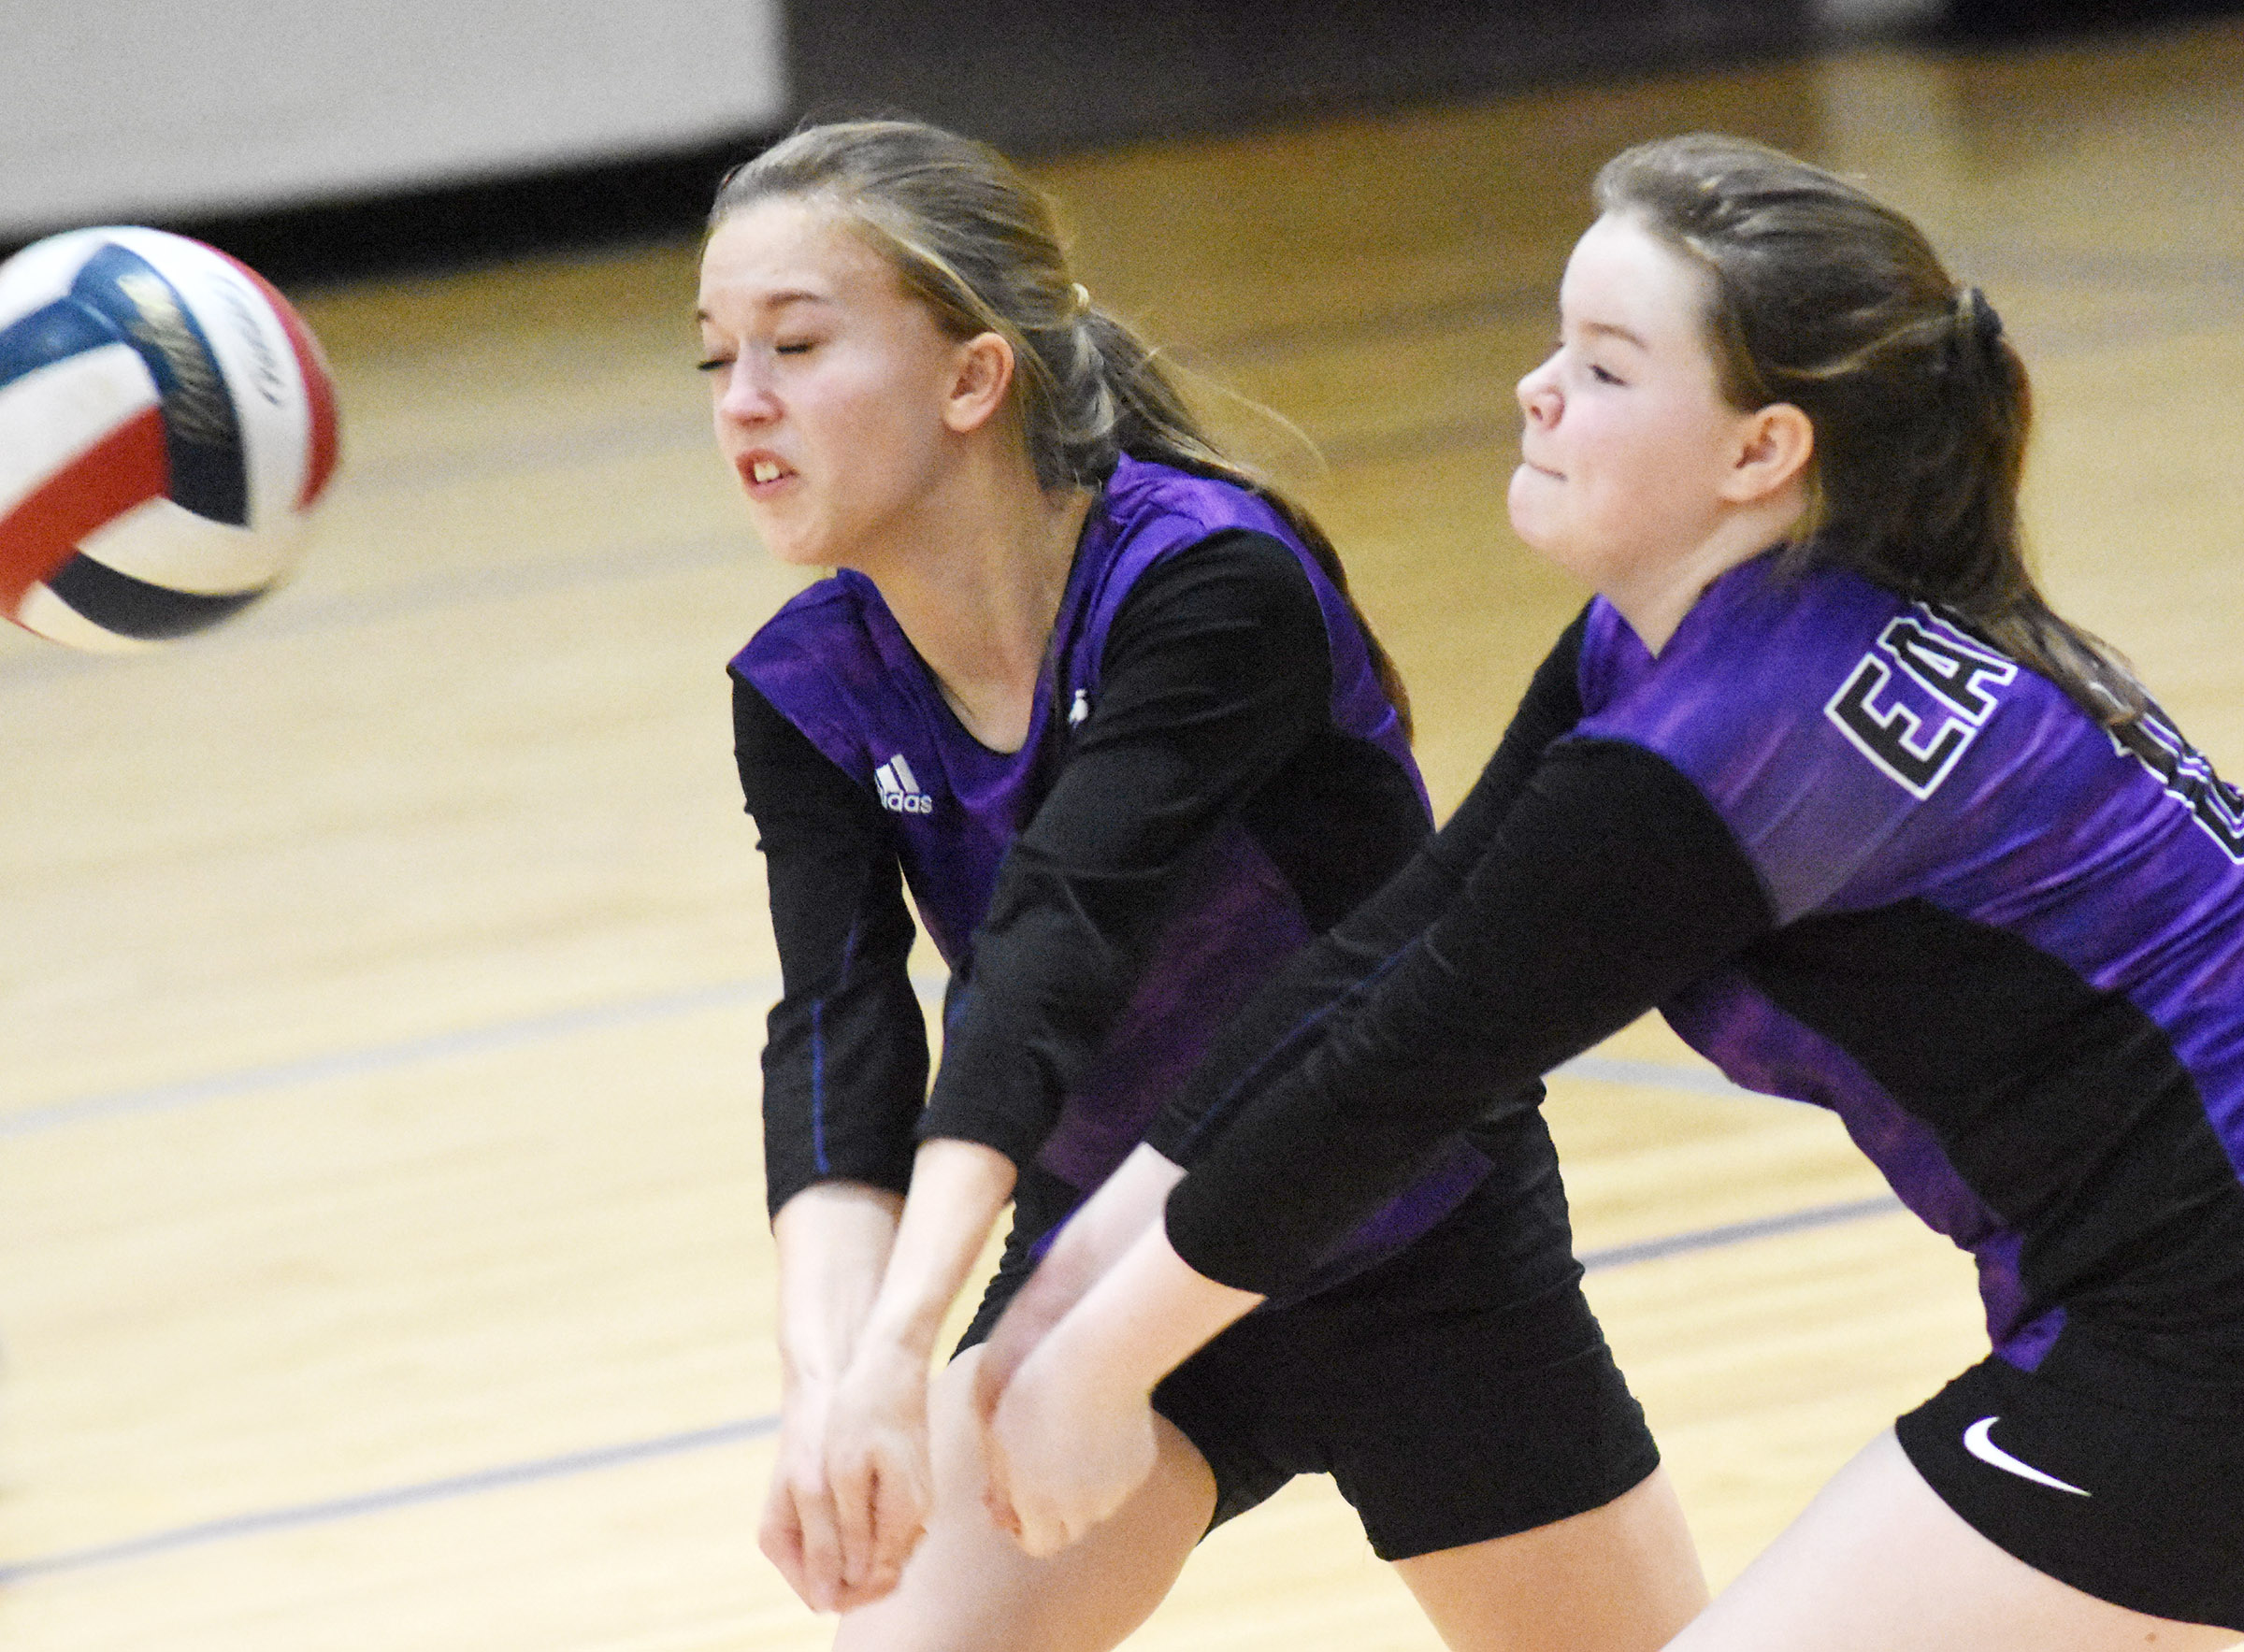 CMS seventh-grader Chloe Thompson, at left, and sixth-grader Miley Hash go for the ball.